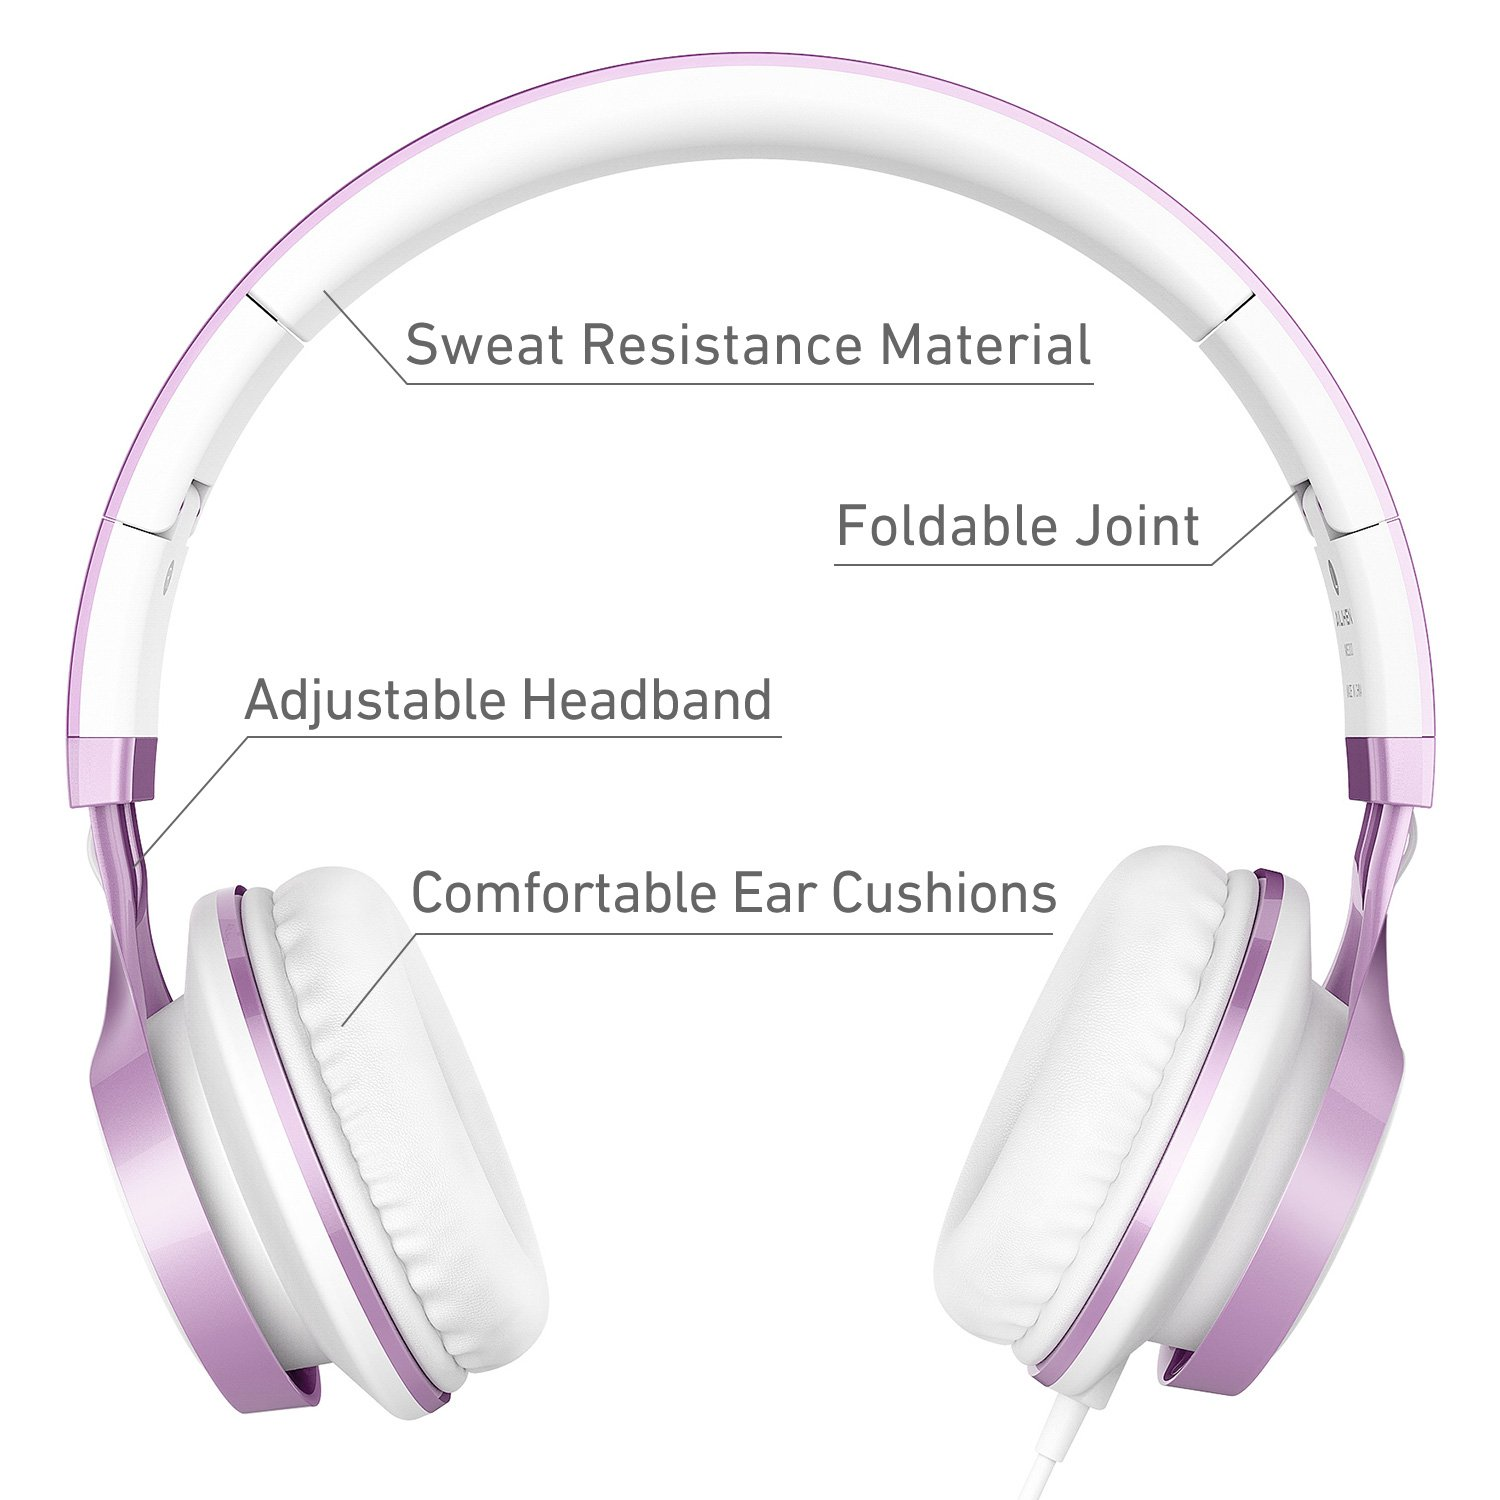 AILIHEN MS300 Wired Headphones, Stereo Foldable Headset for iOS Android Smartphone Laptop Tablet PC Computer (Purple)